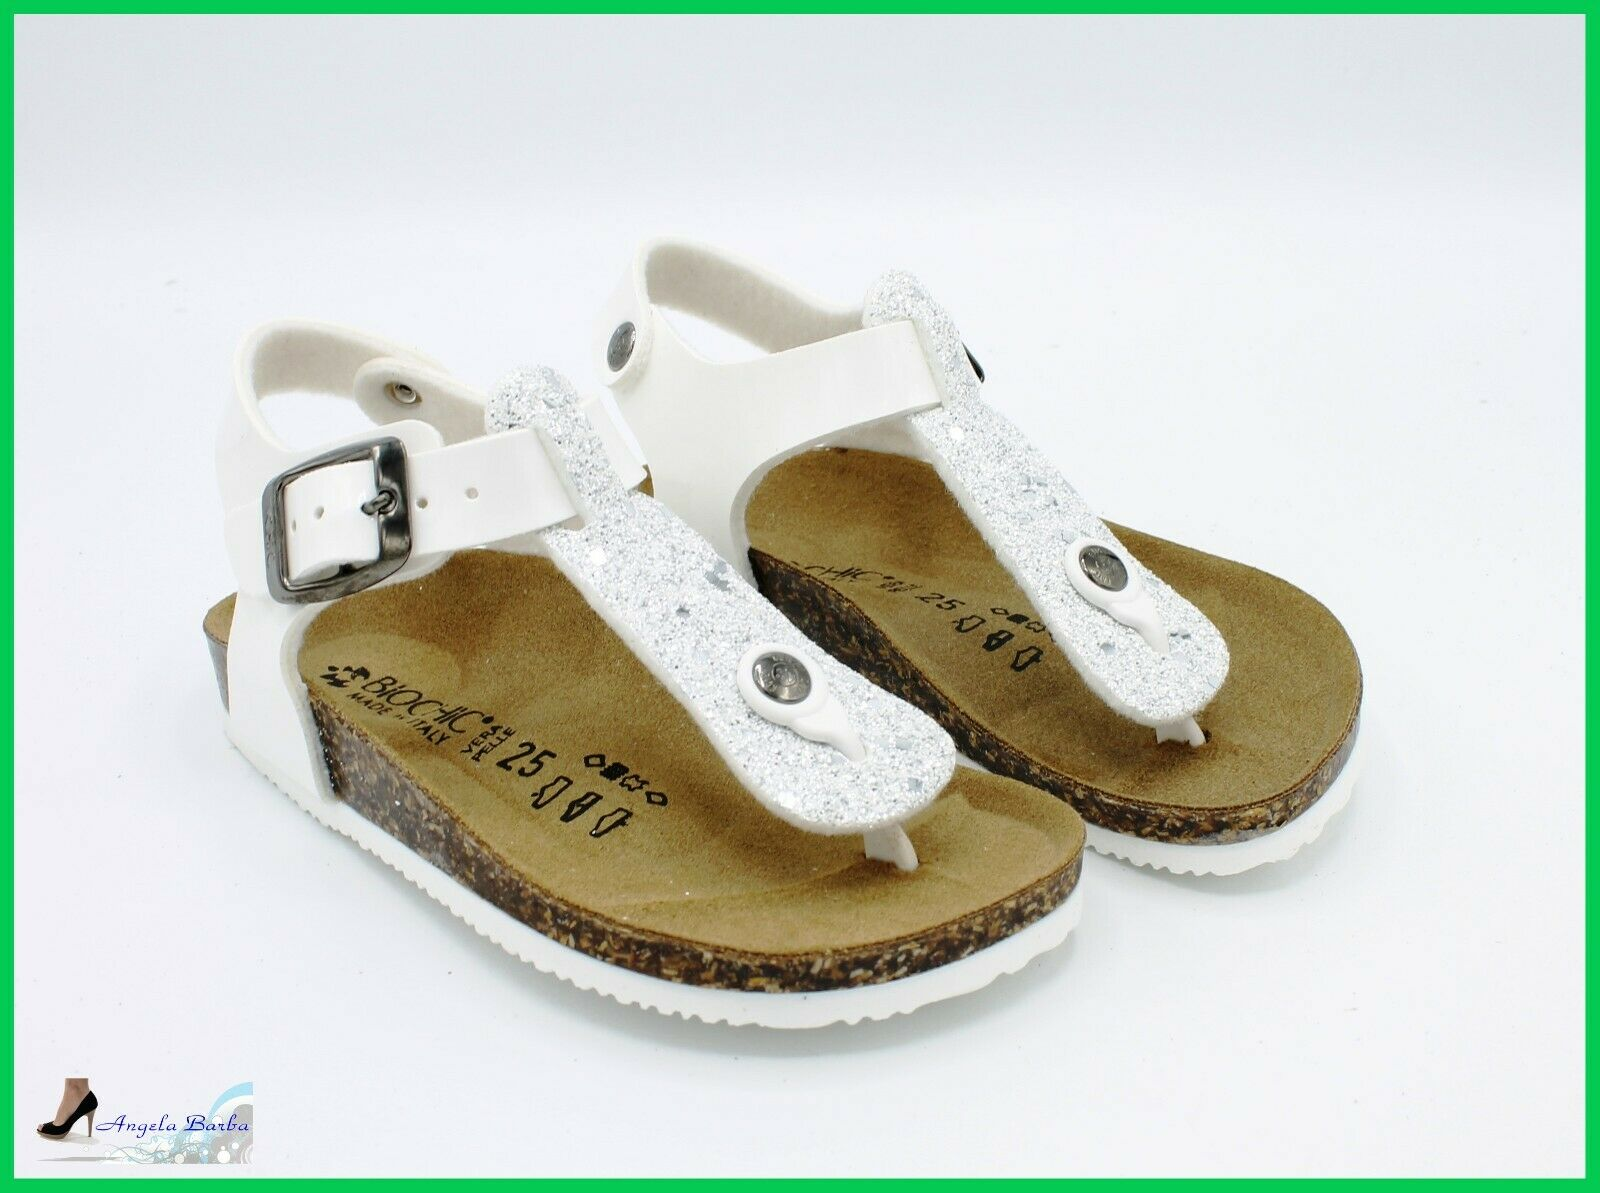 Biochic Sandals Baby Flip-Flops for Baby Girl Leather Anatomic with Strap